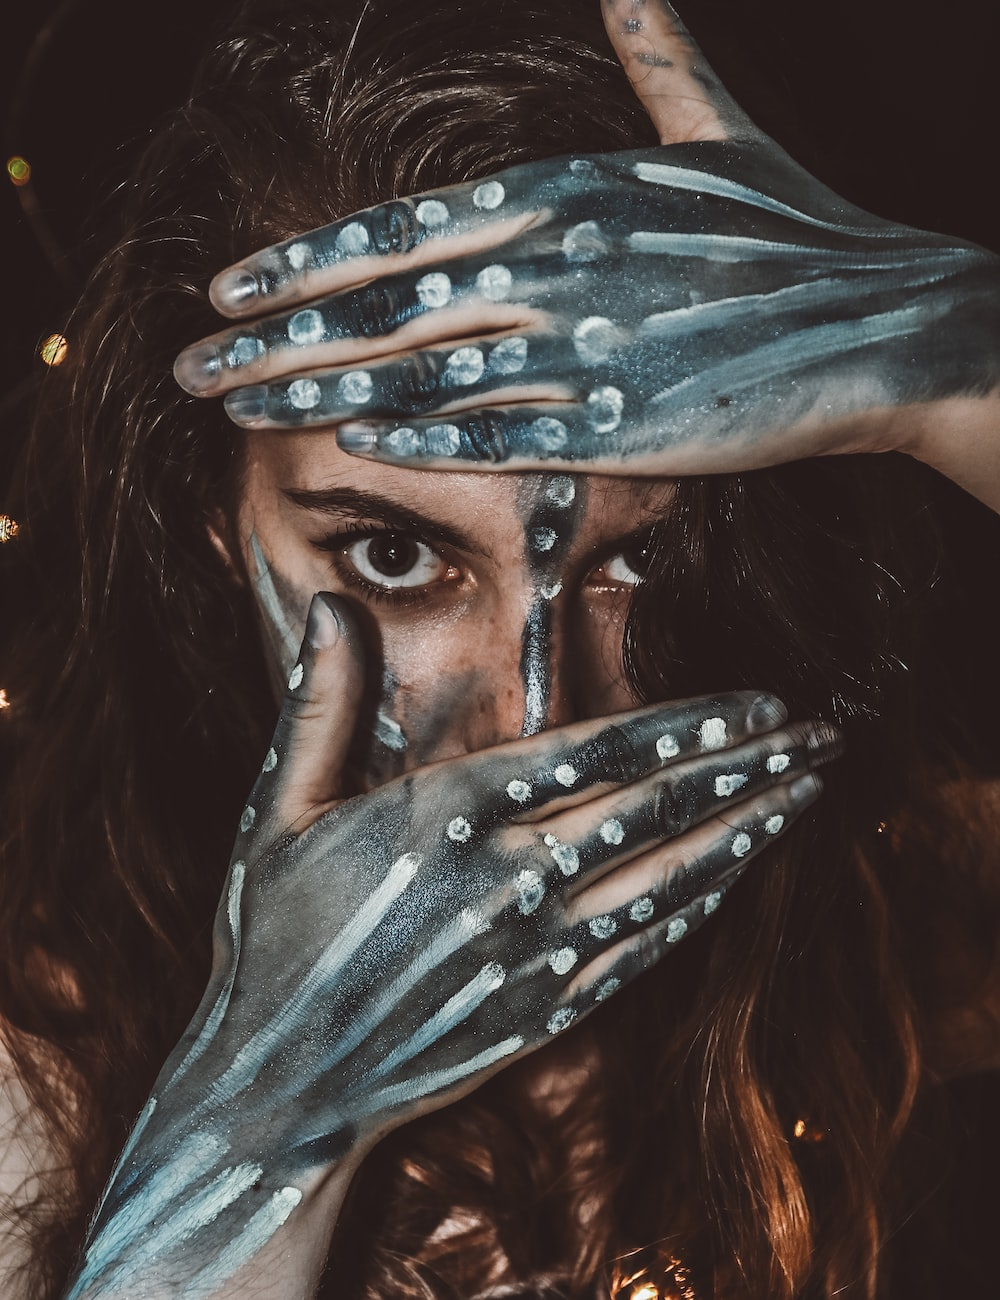 woman with black and white body paint covering half of her face with her hands